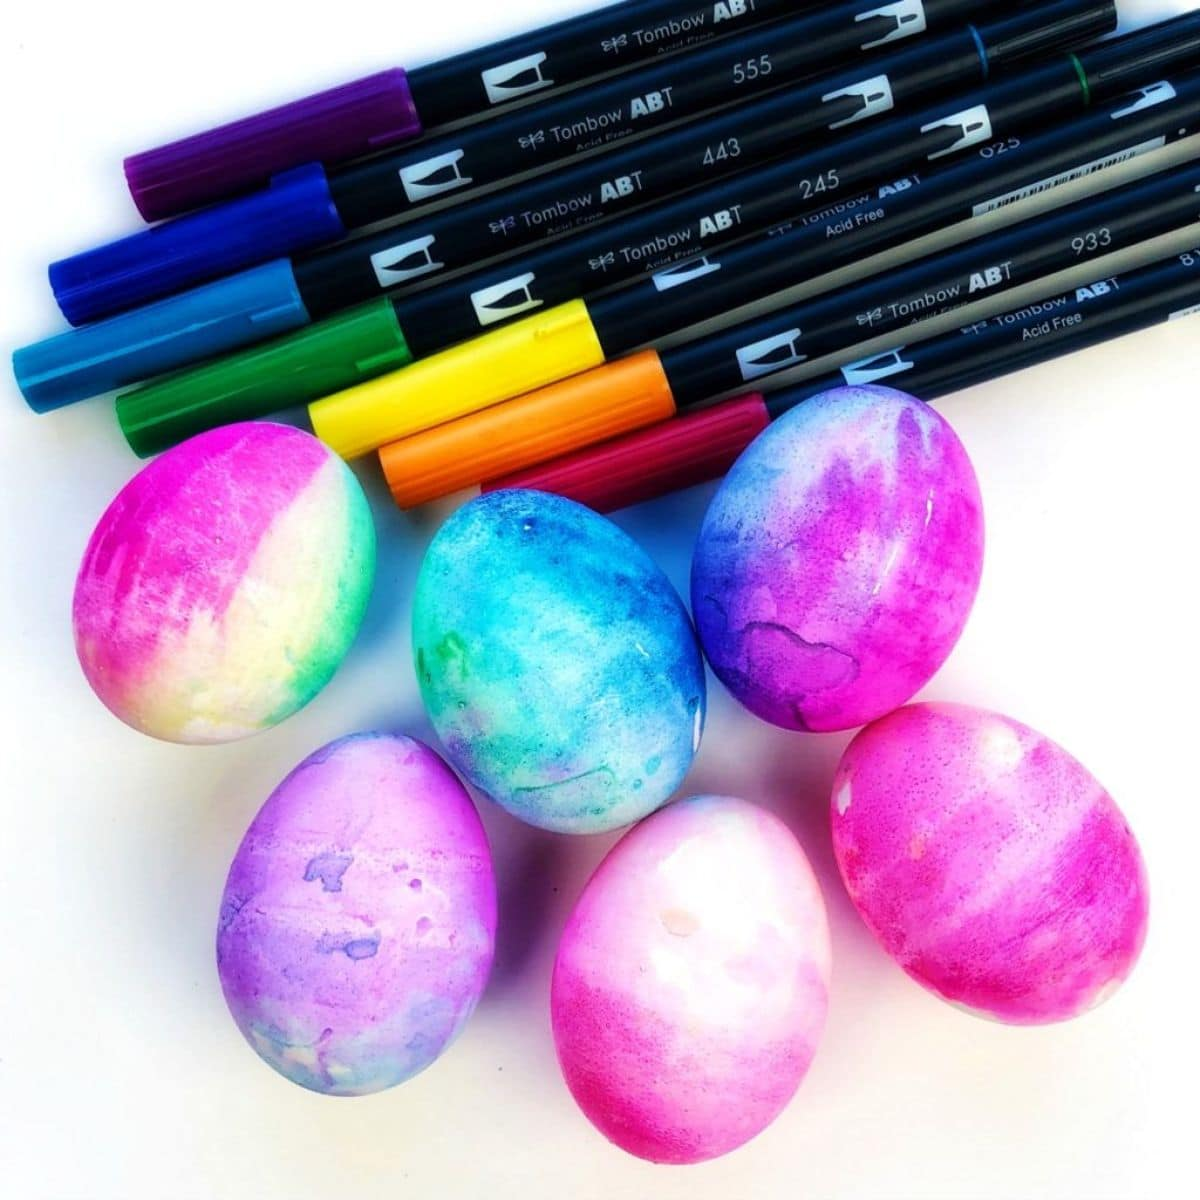 a pile of brush pens sit above six decorated hard boiled eggs on a white background